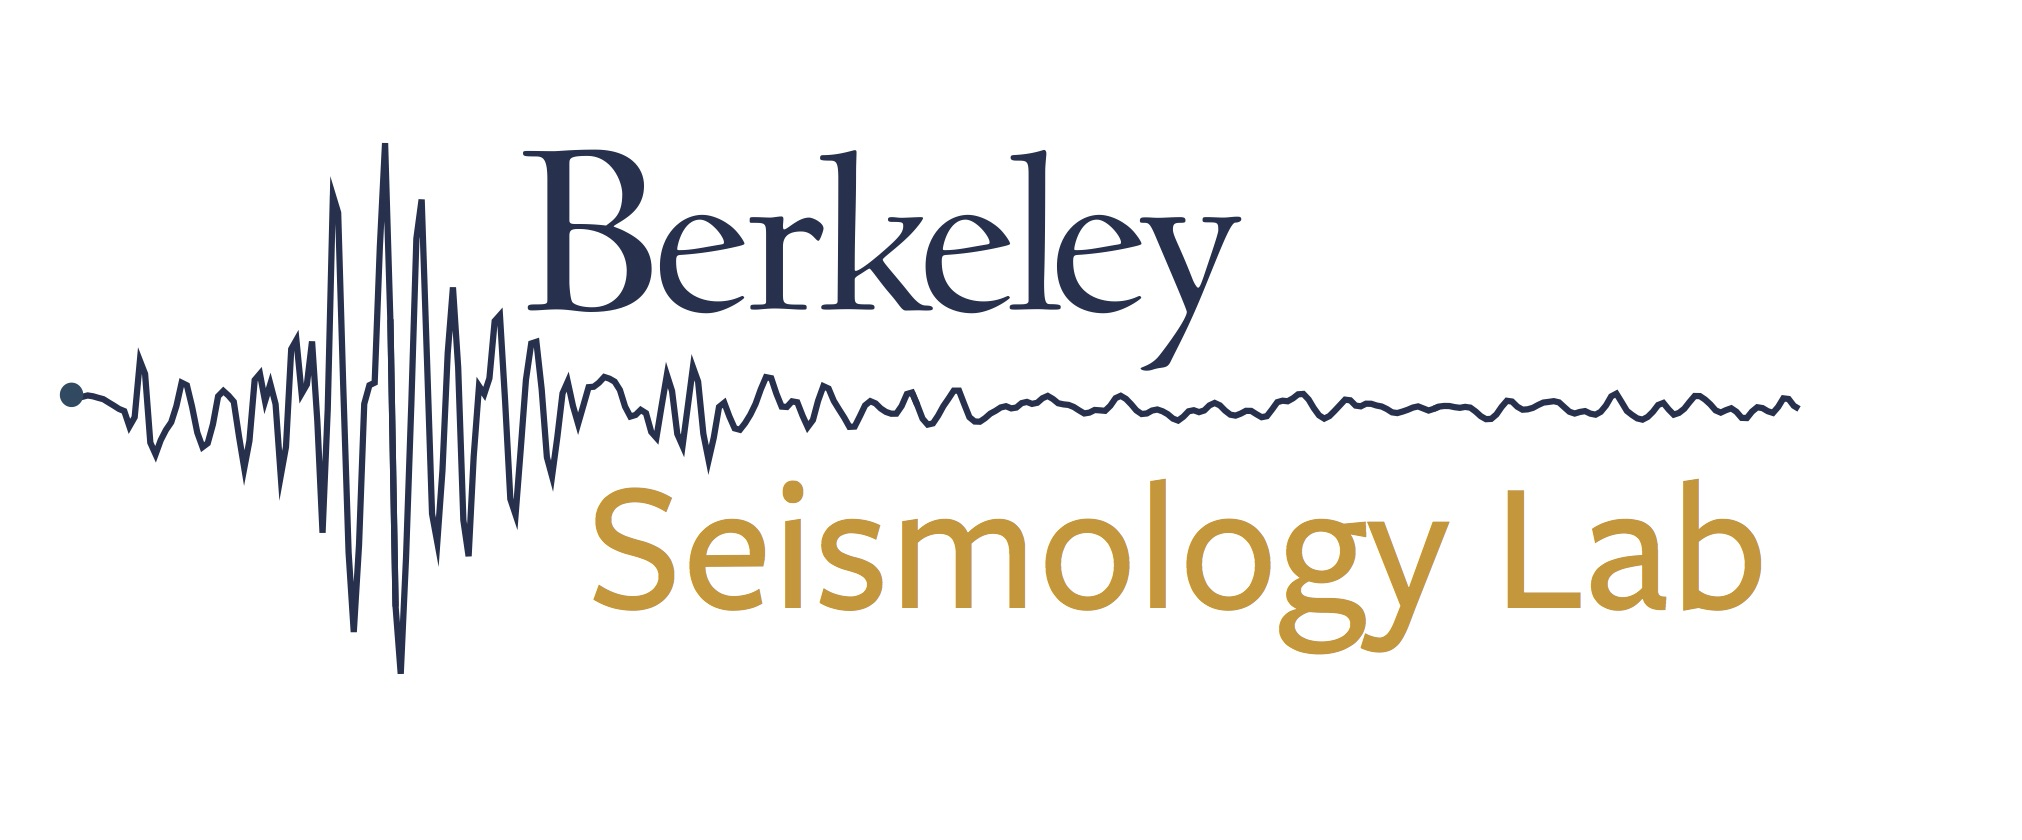 Berkeley Seismo Lab logo